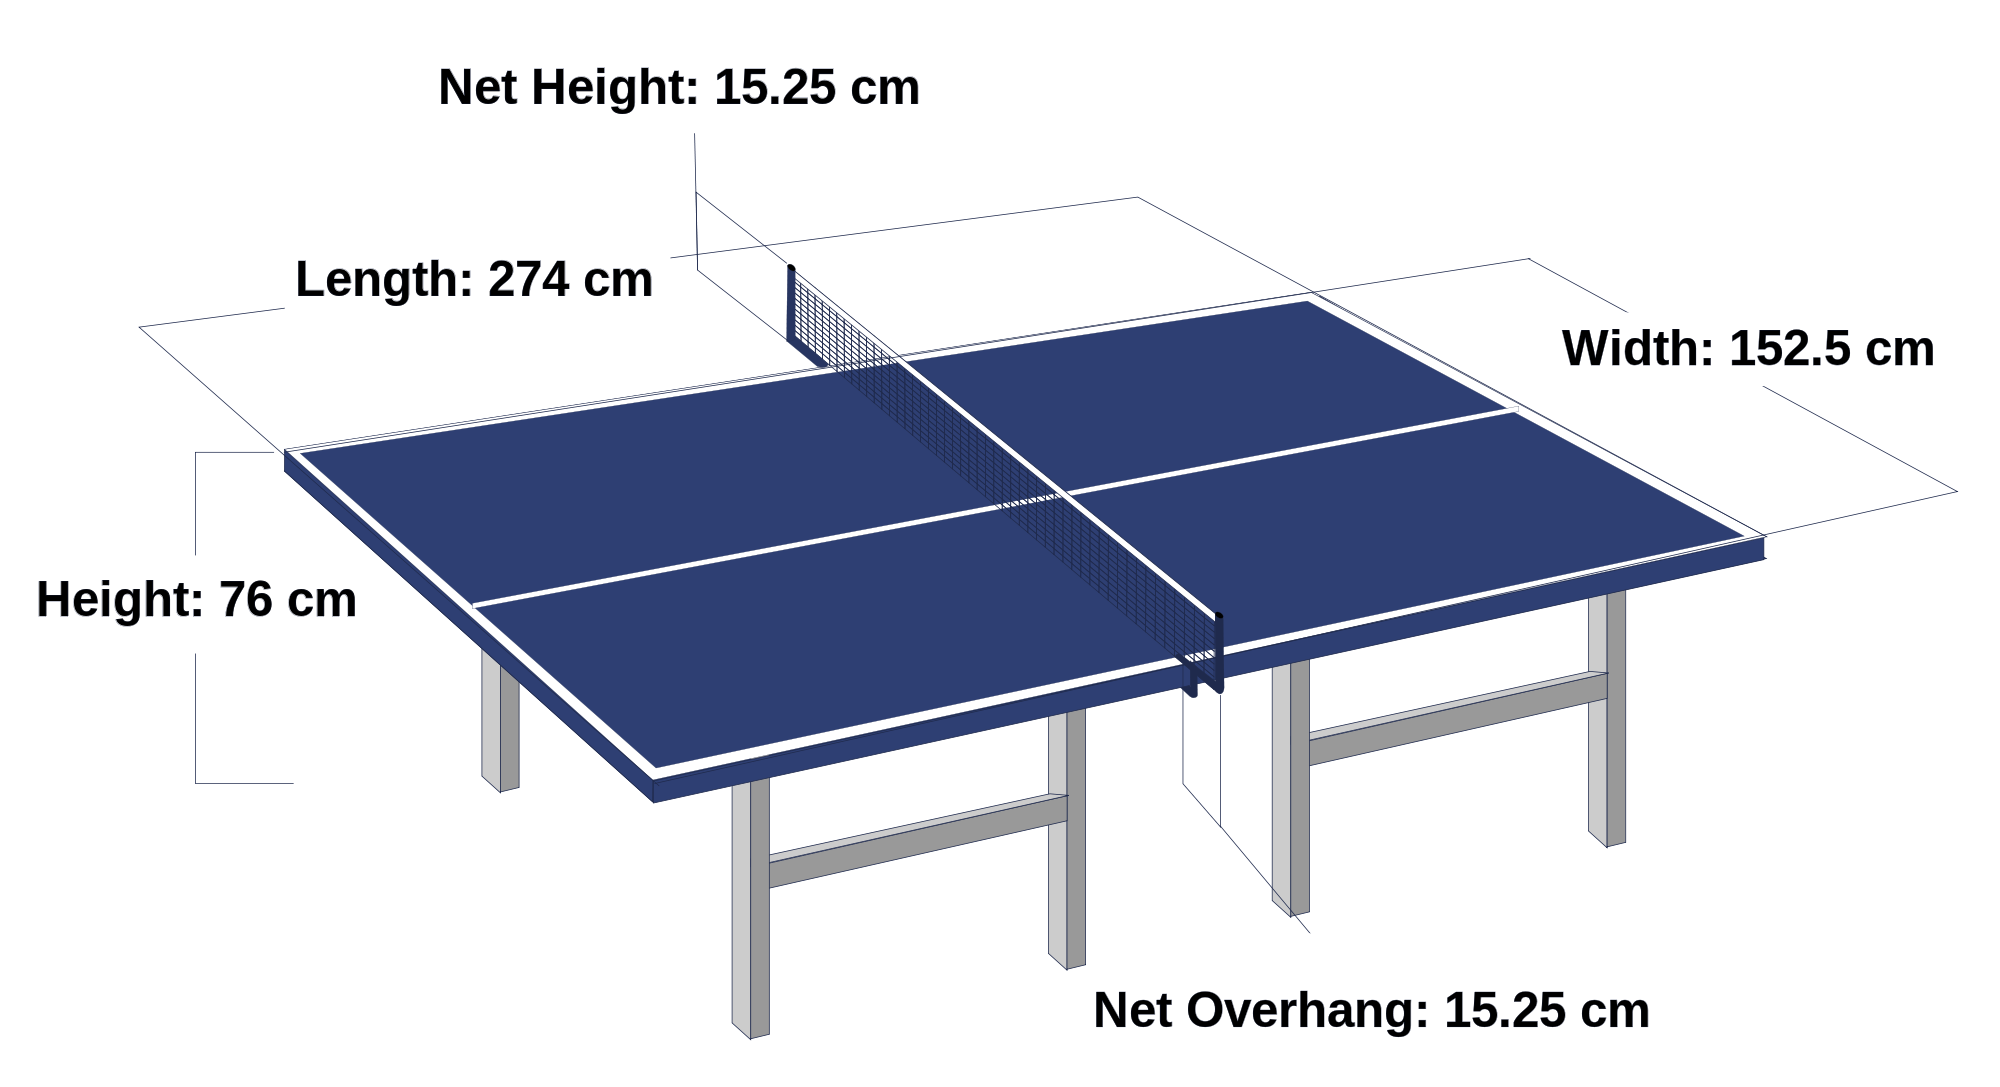 Table Tennis Table Size And Specifications Google Search